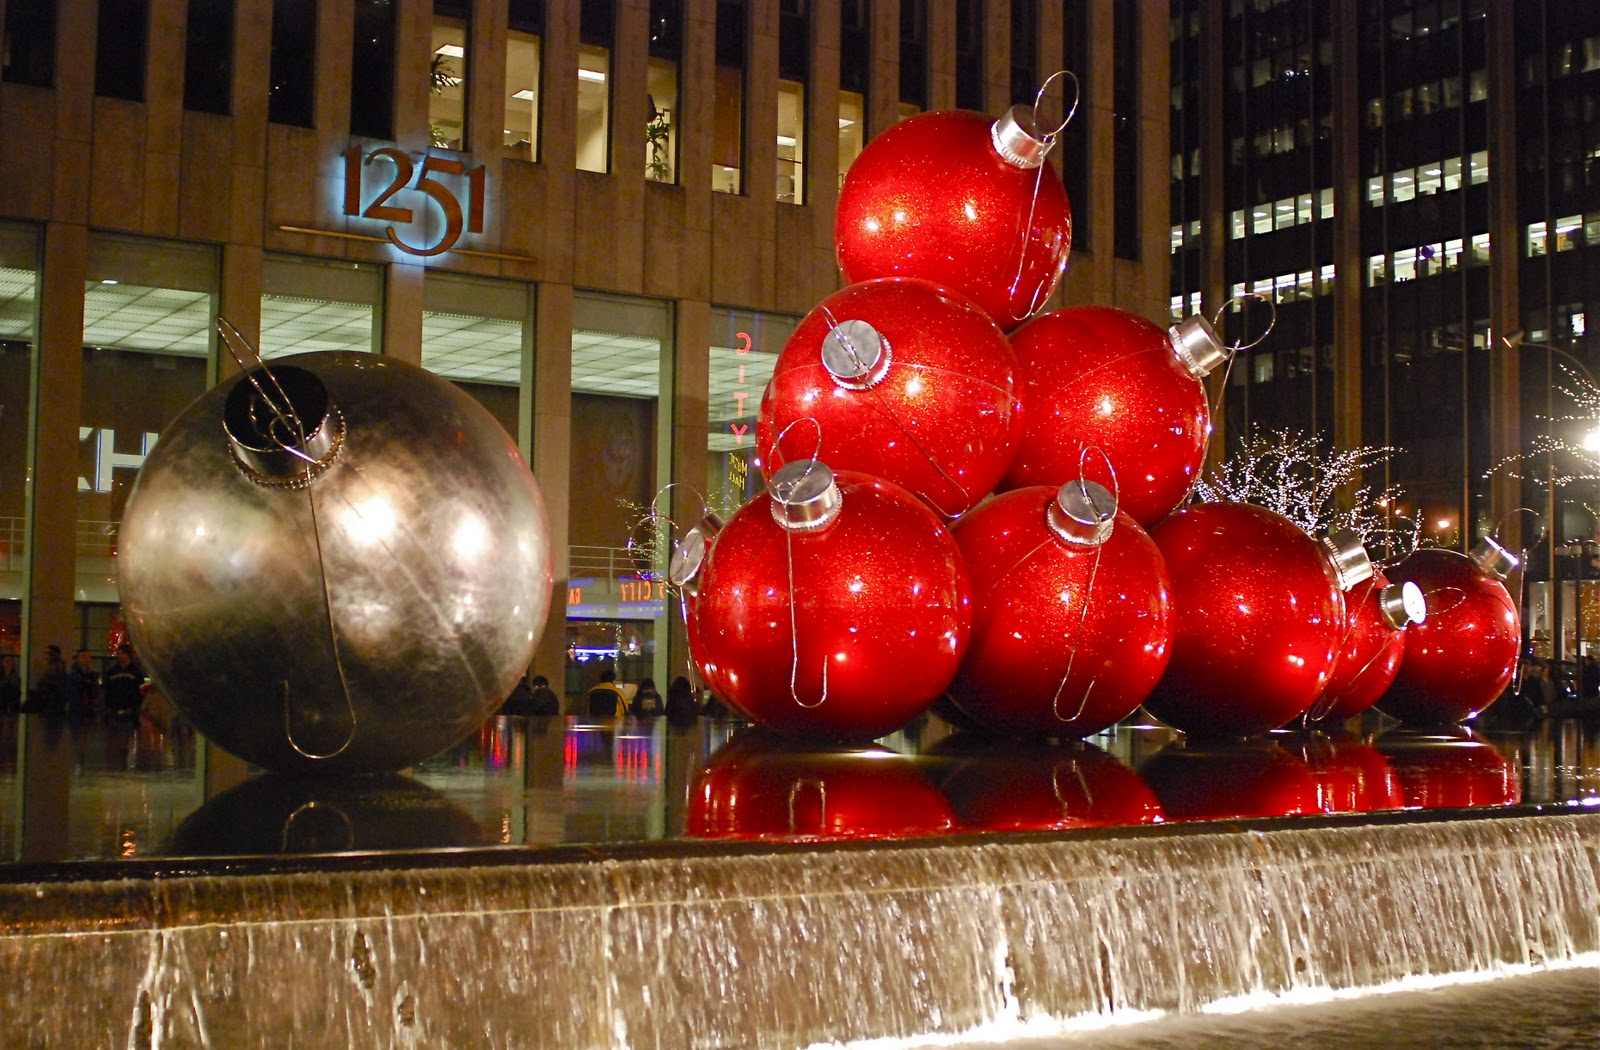 giant christmas ornaments at 1251 sixth avenue - New Christmas Decorations